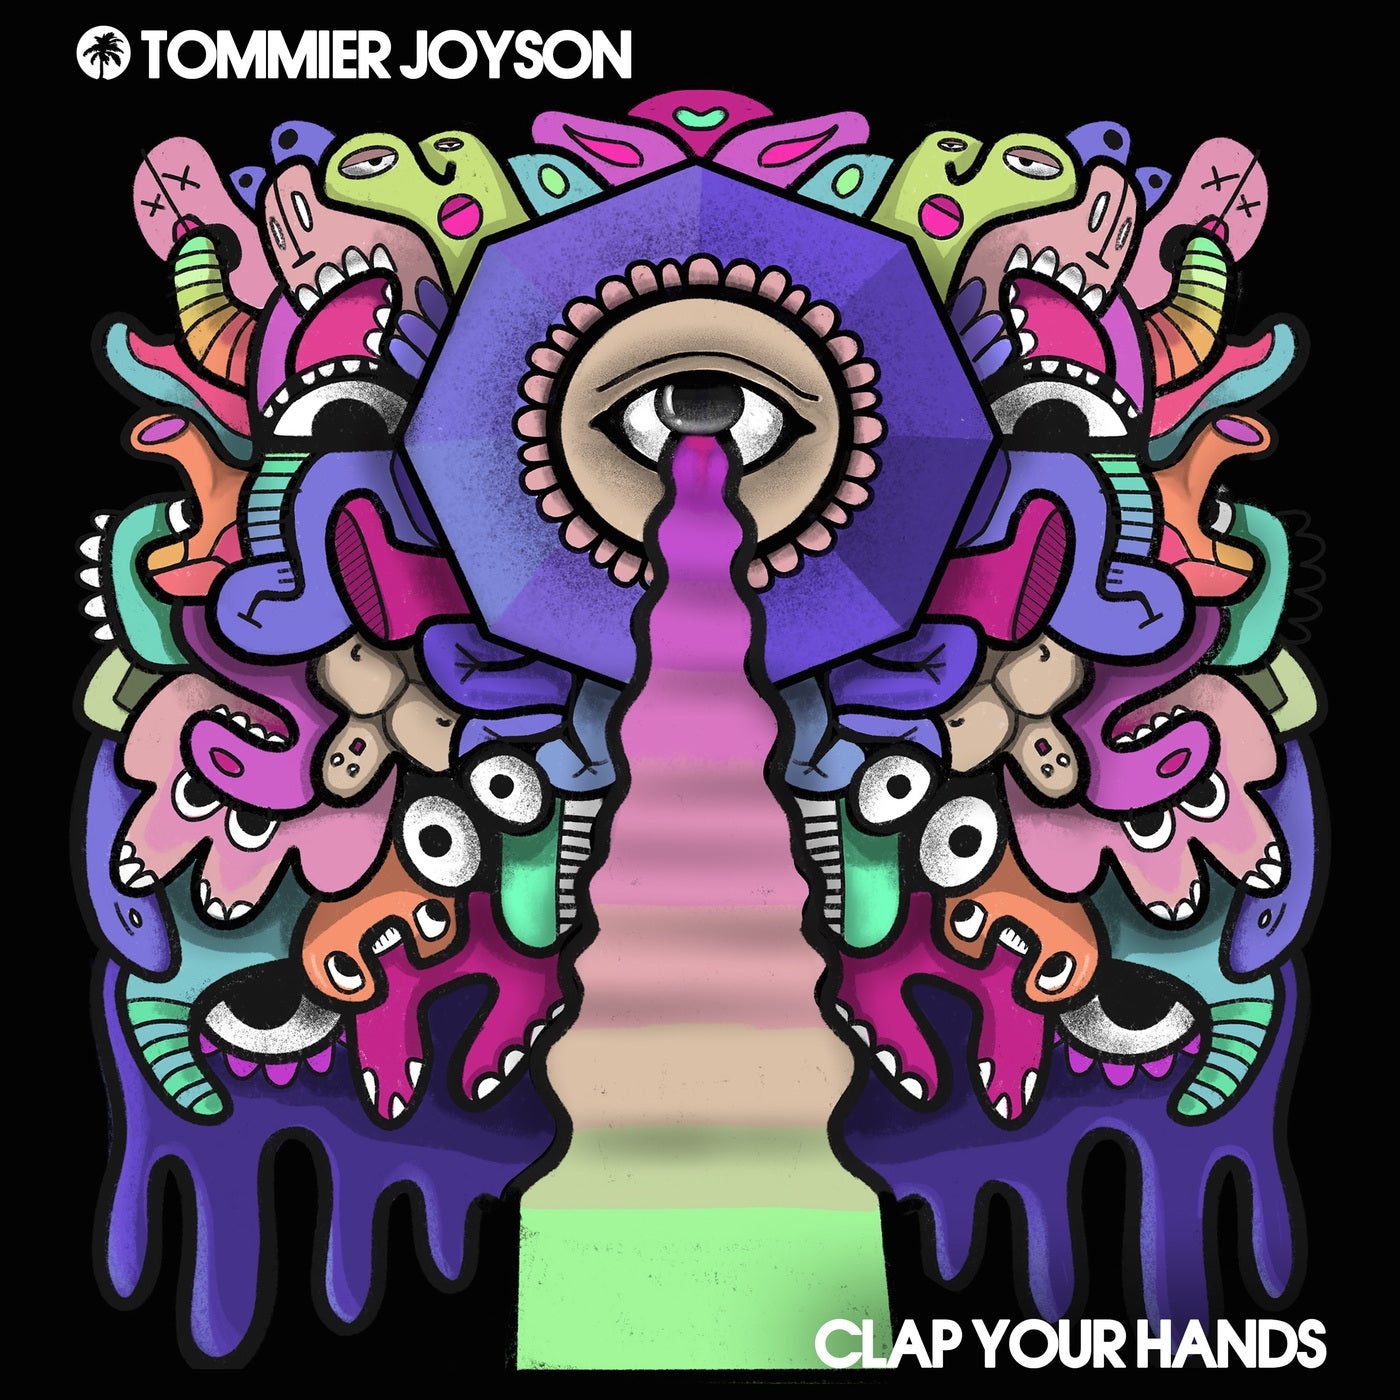 Download Clap Your Hands on Electrobuzz